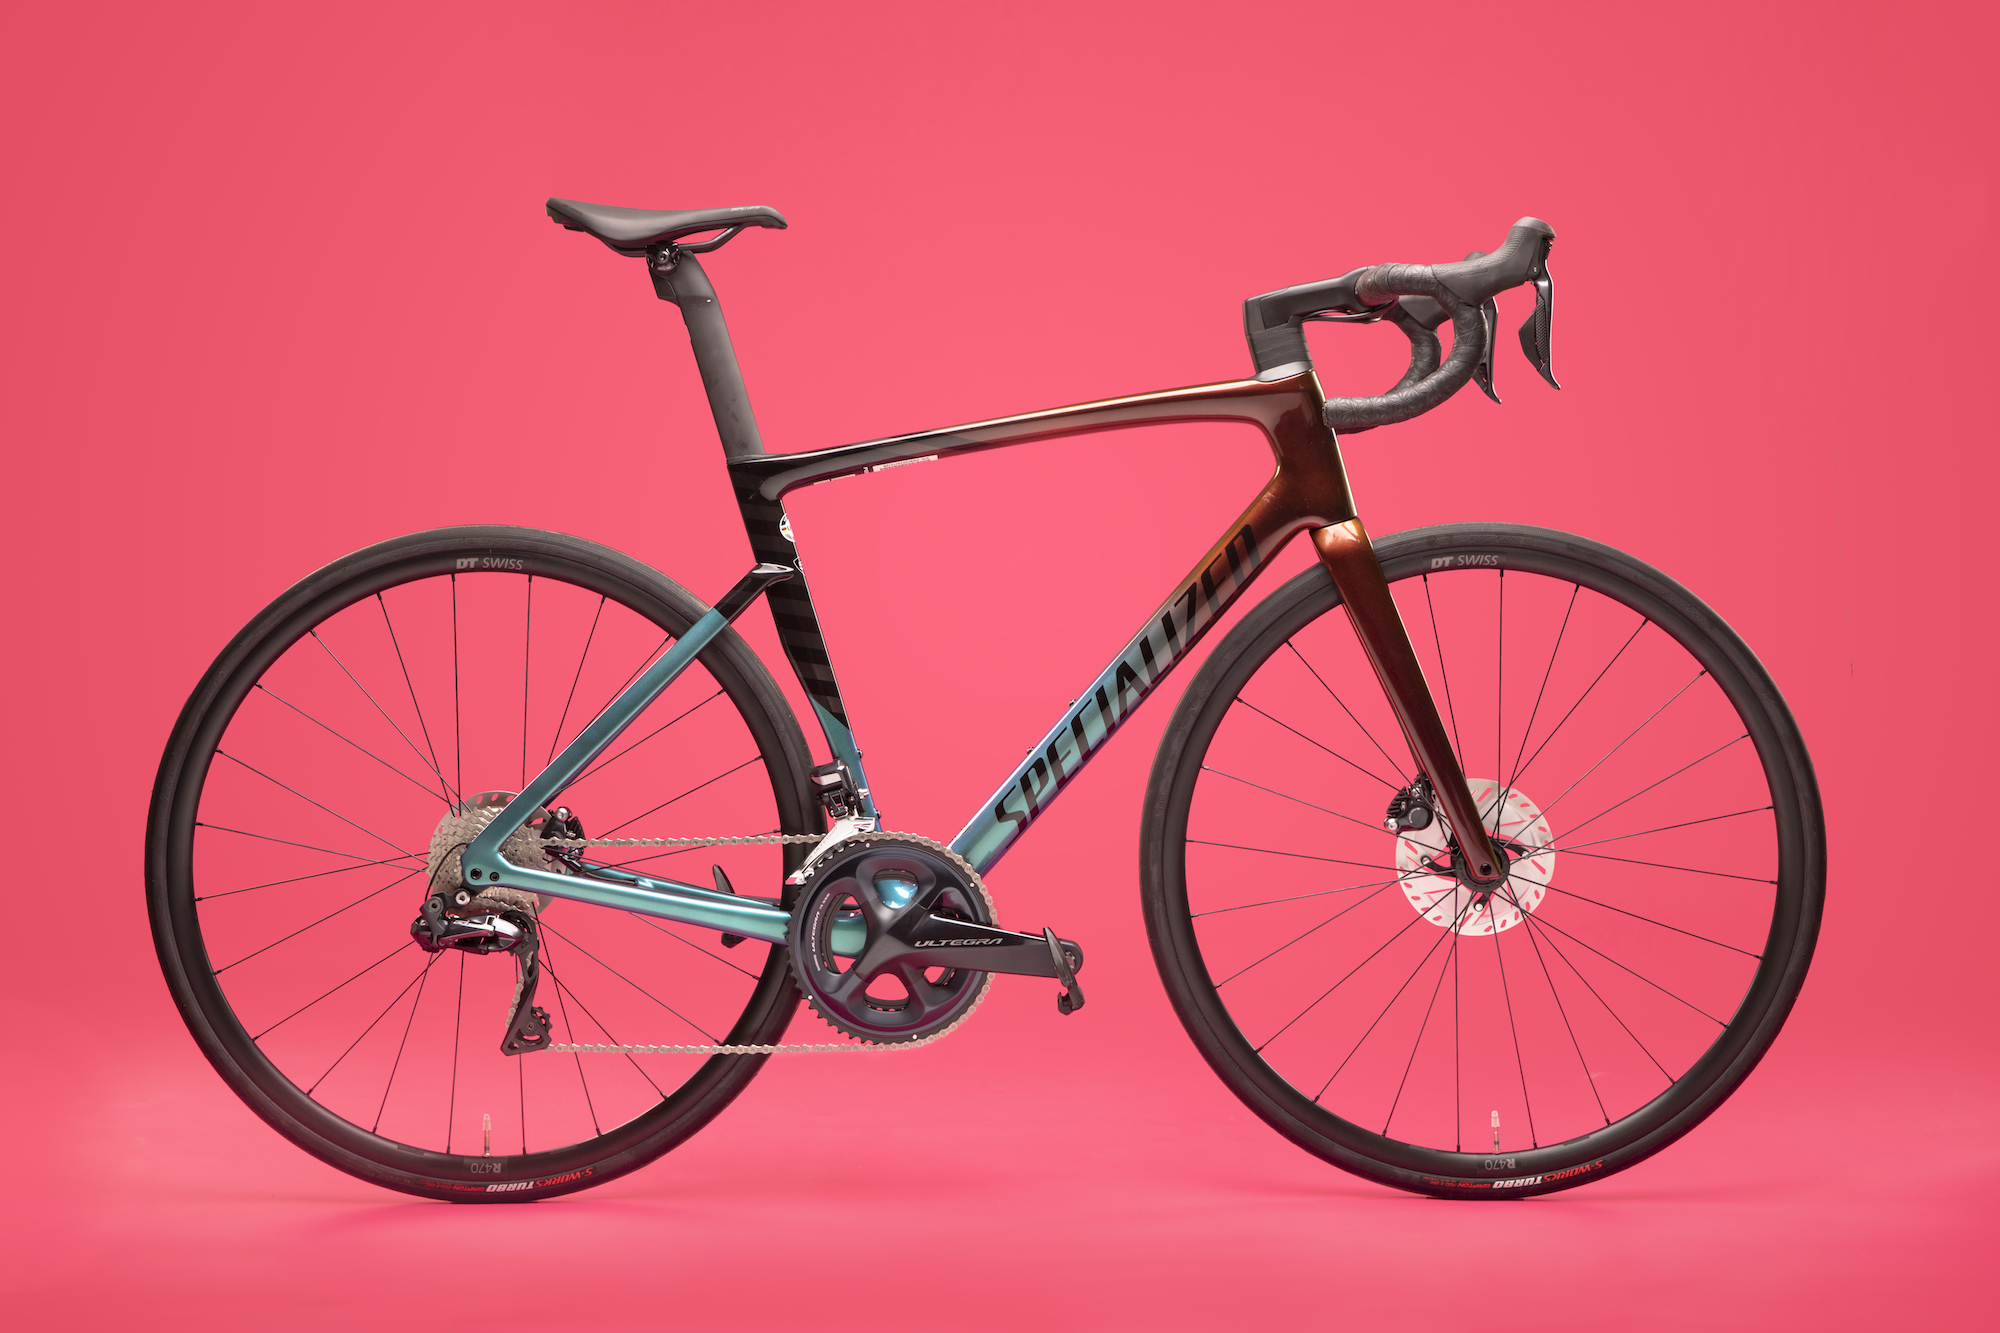 Specialized Tarmac SL7 Expert review - Cycling Weekly